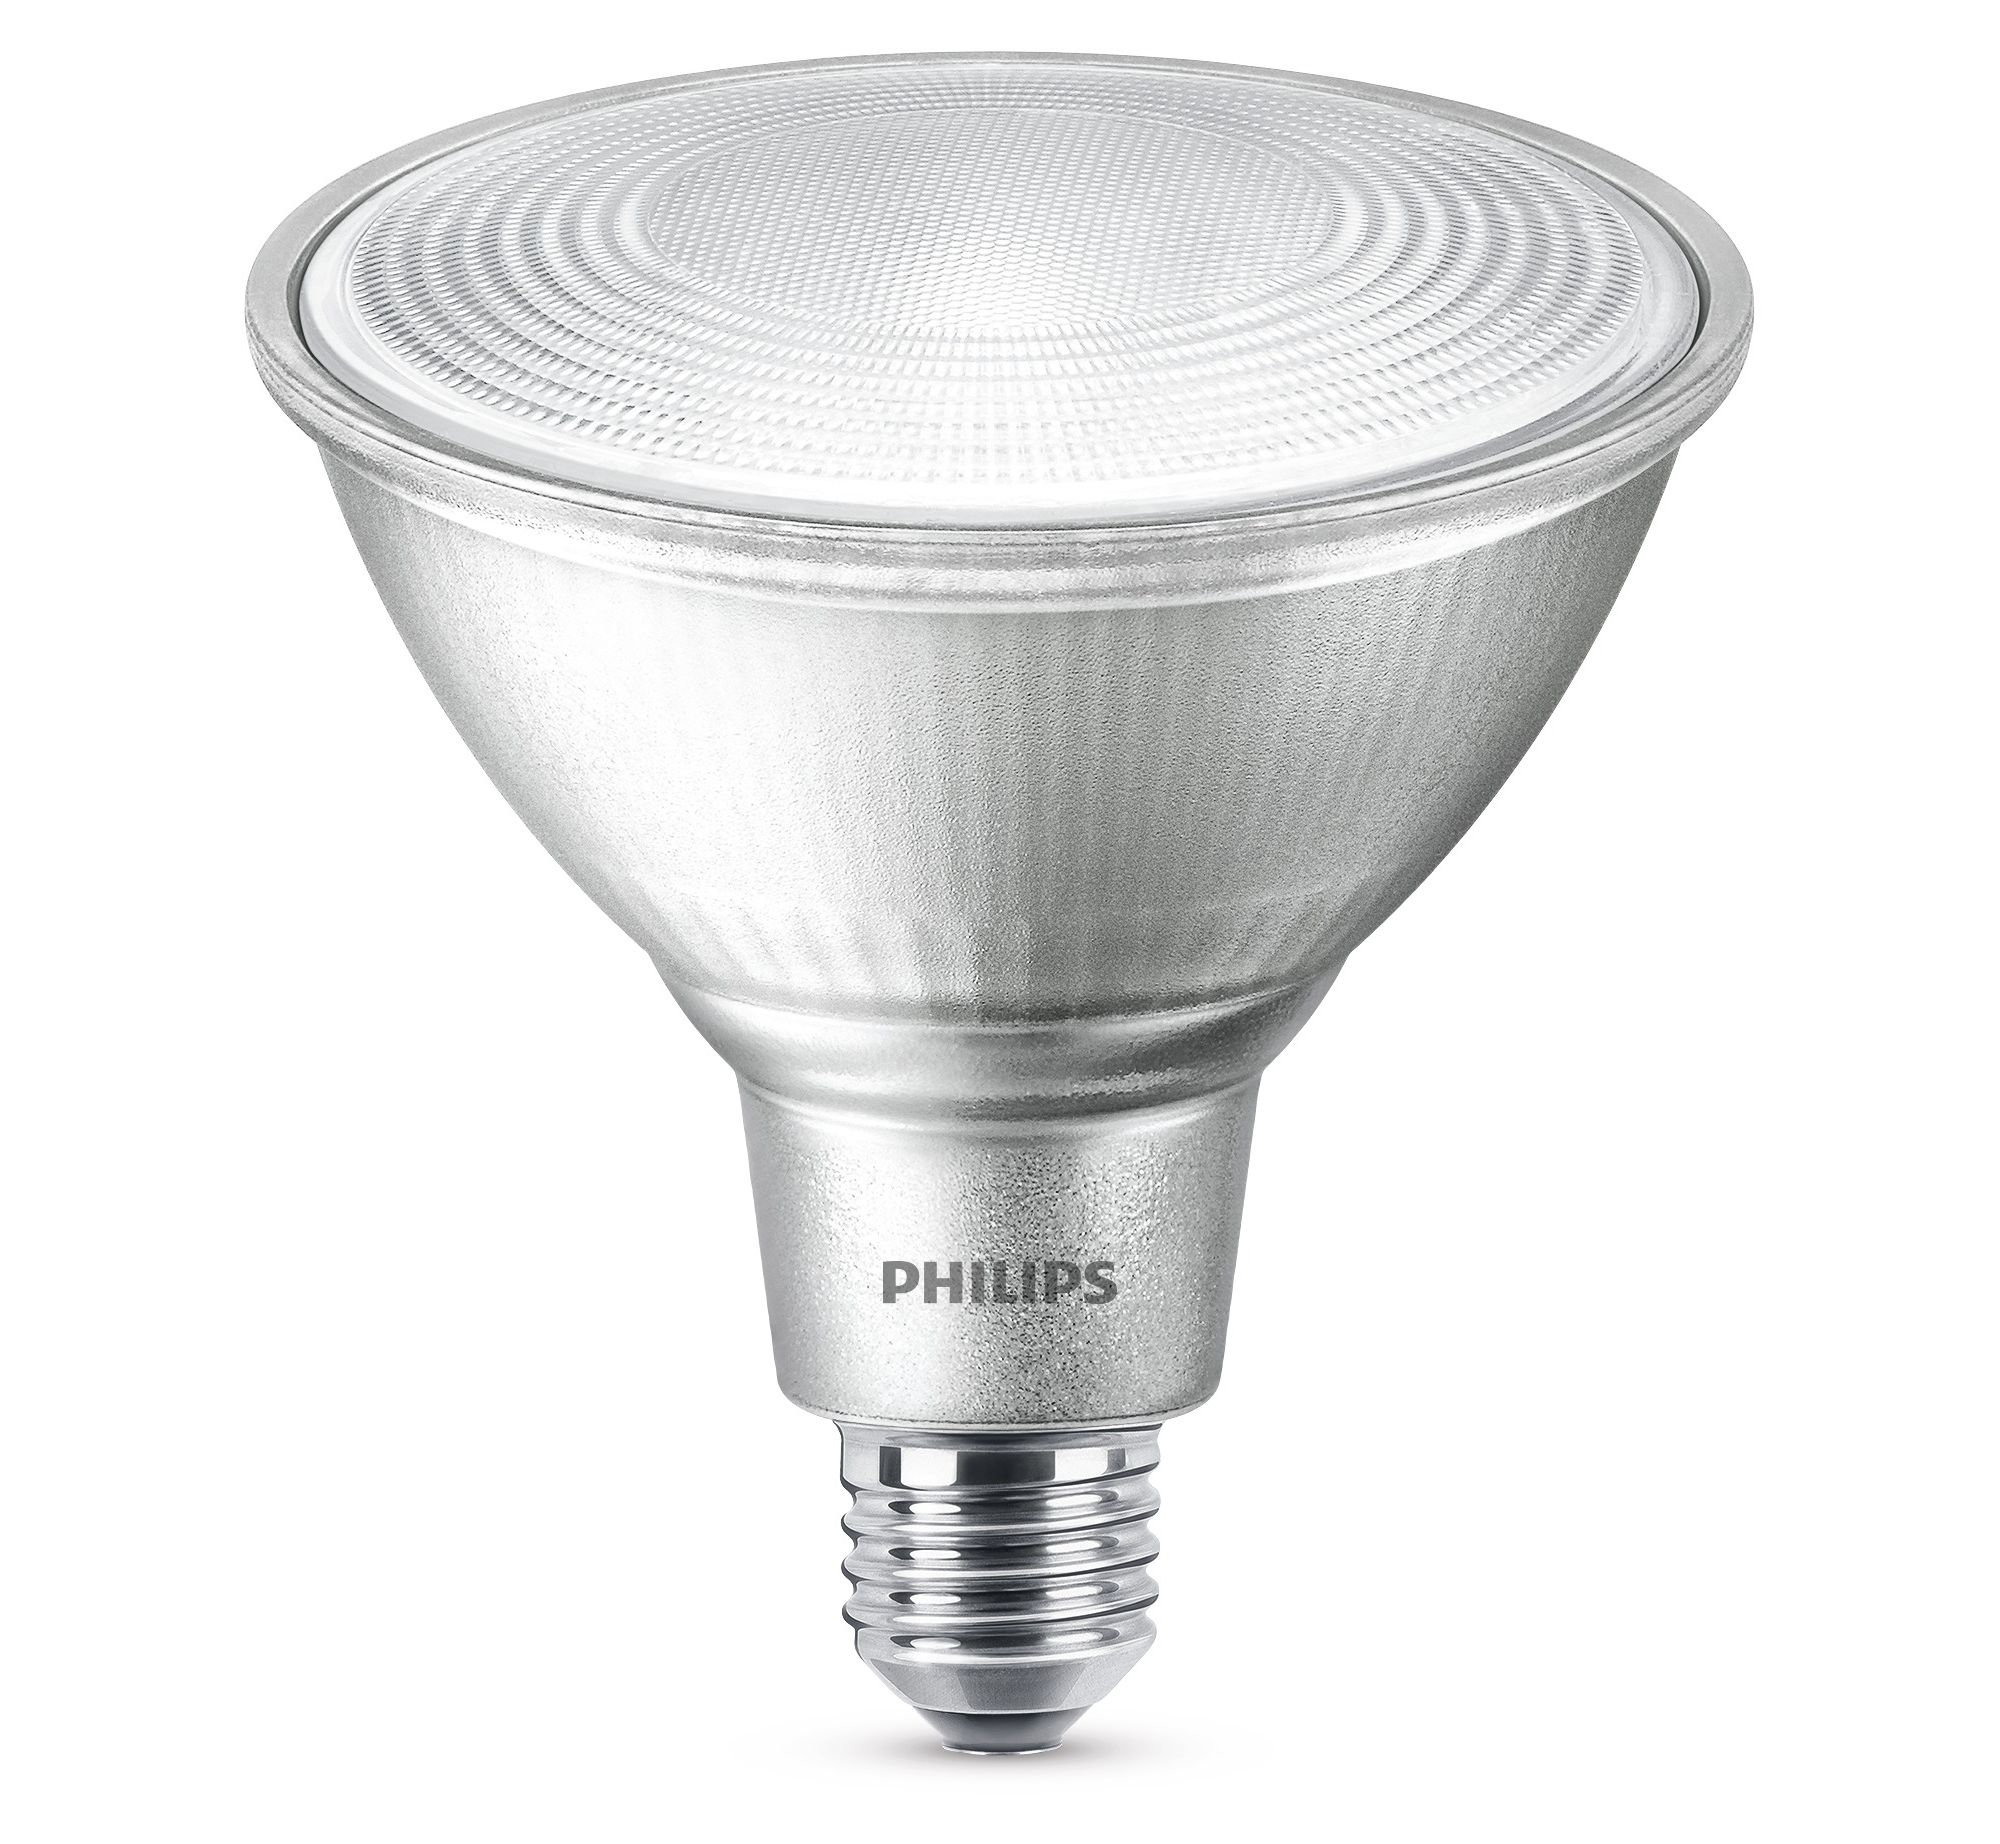 Philips - Lampadina a LED - E27 PAR38 - Mlpar38100827